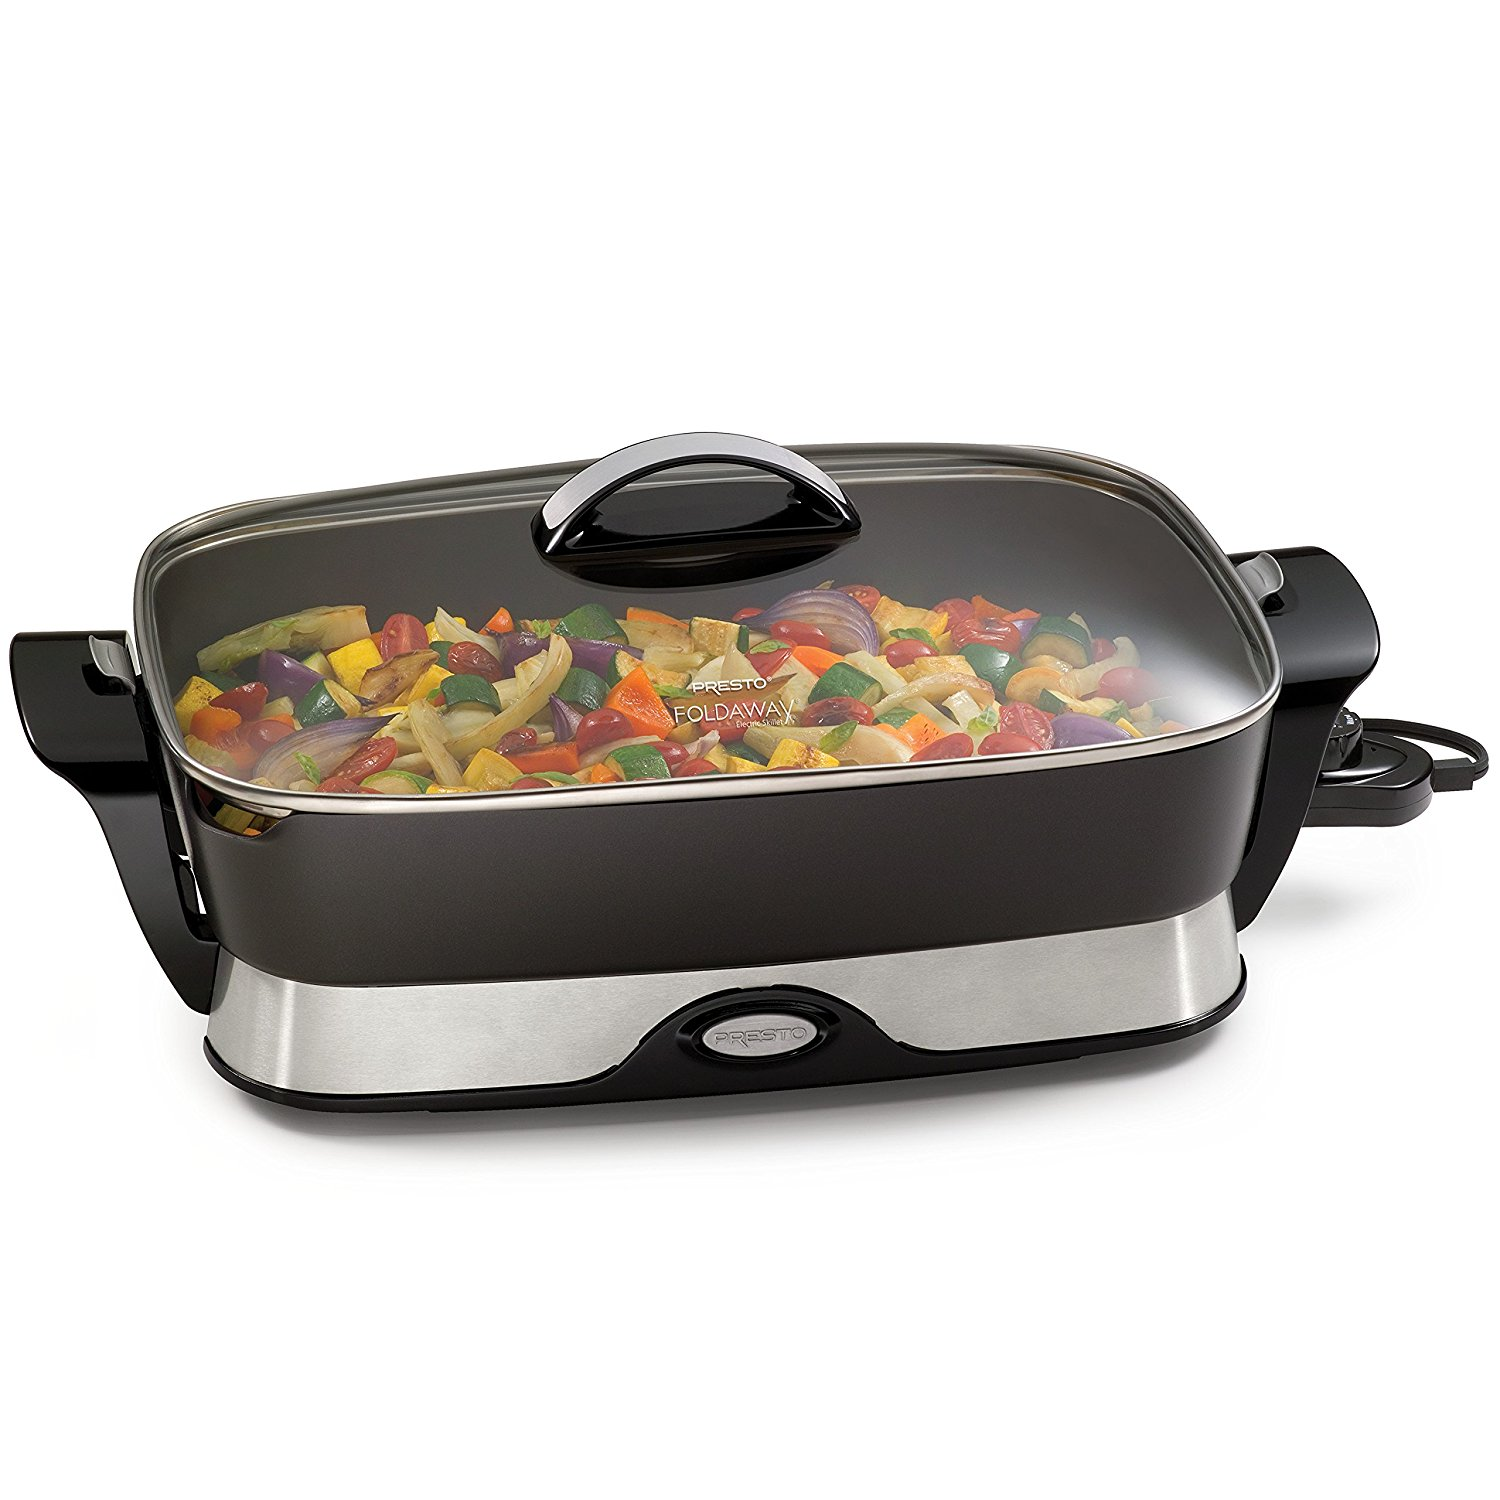 Ten Best Electric Skillets 2019 Reviews And Buyers Guide